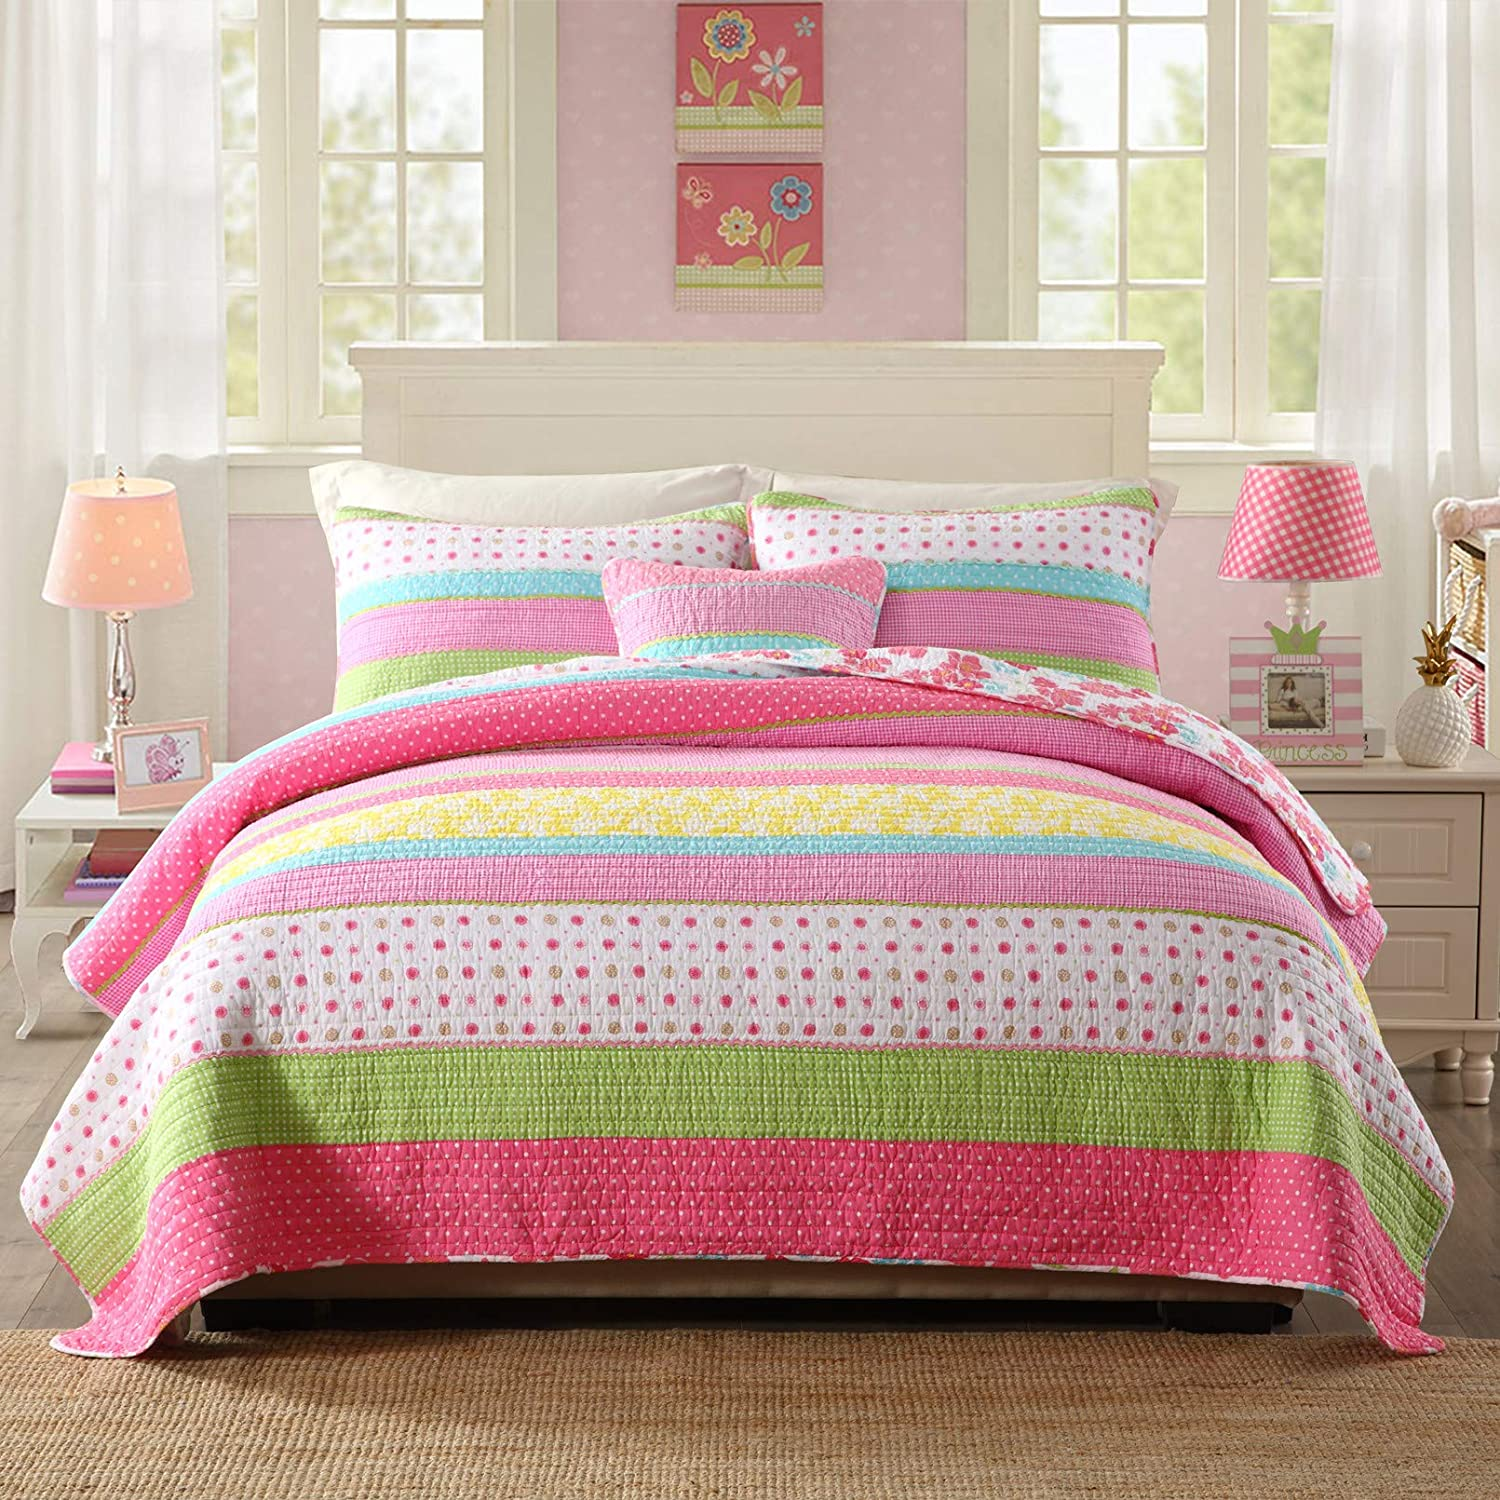 Pink Dot and Striped Floral Bed Sheet